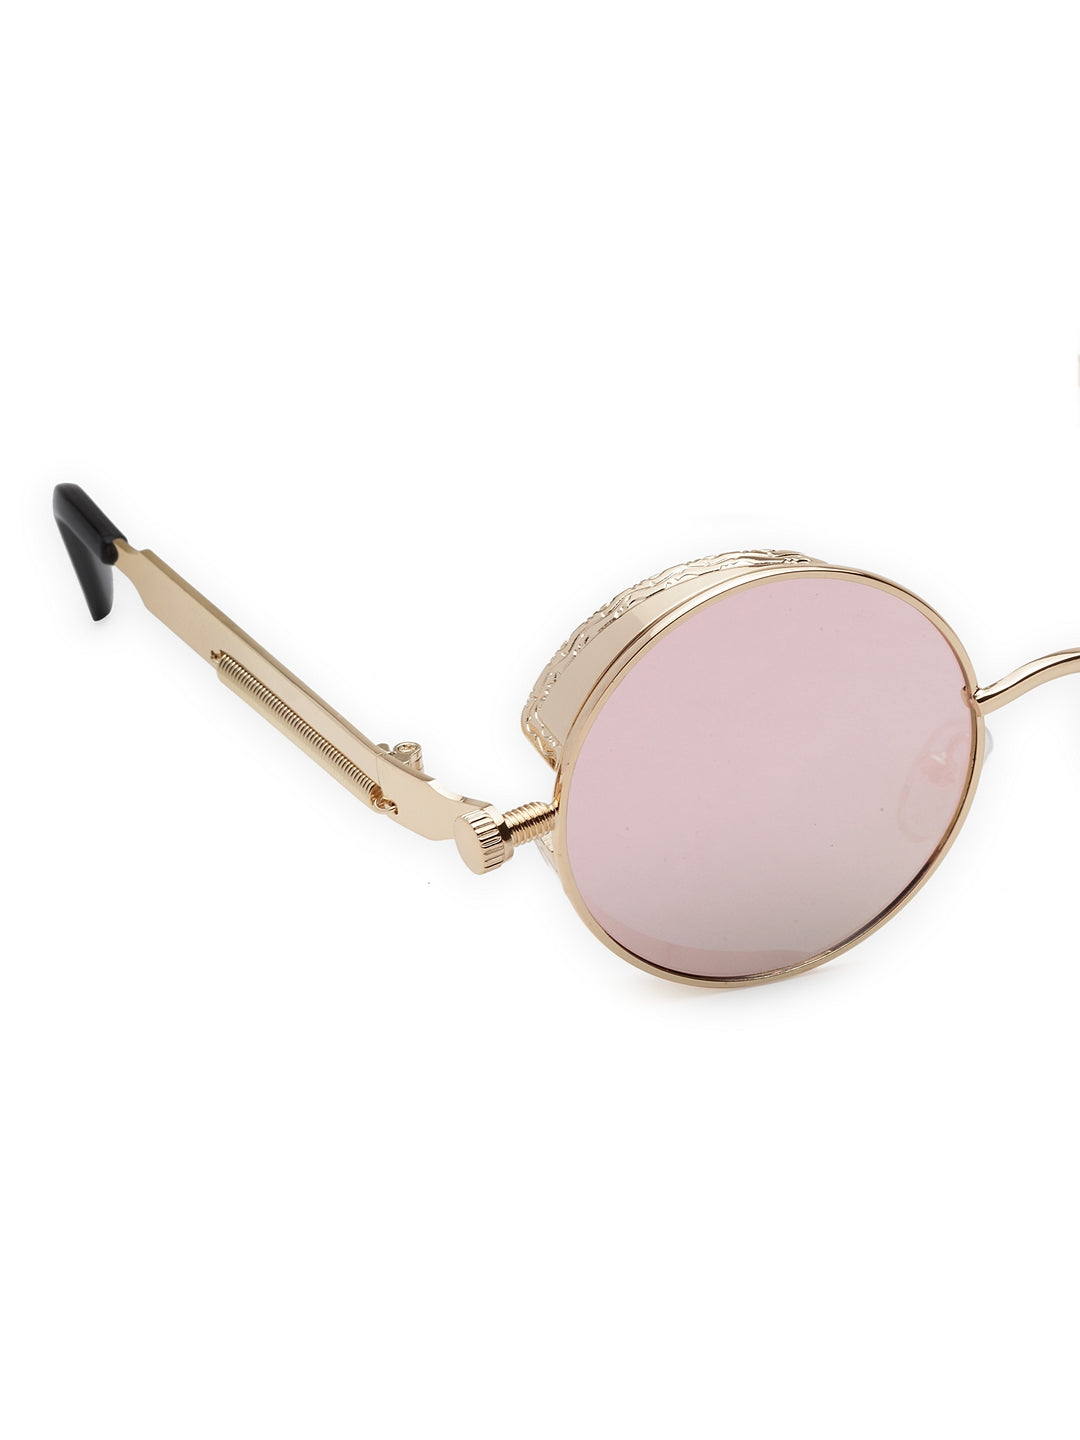 Avant-Garde Paris Vintage Twin-Beam Mirror Sunglasses